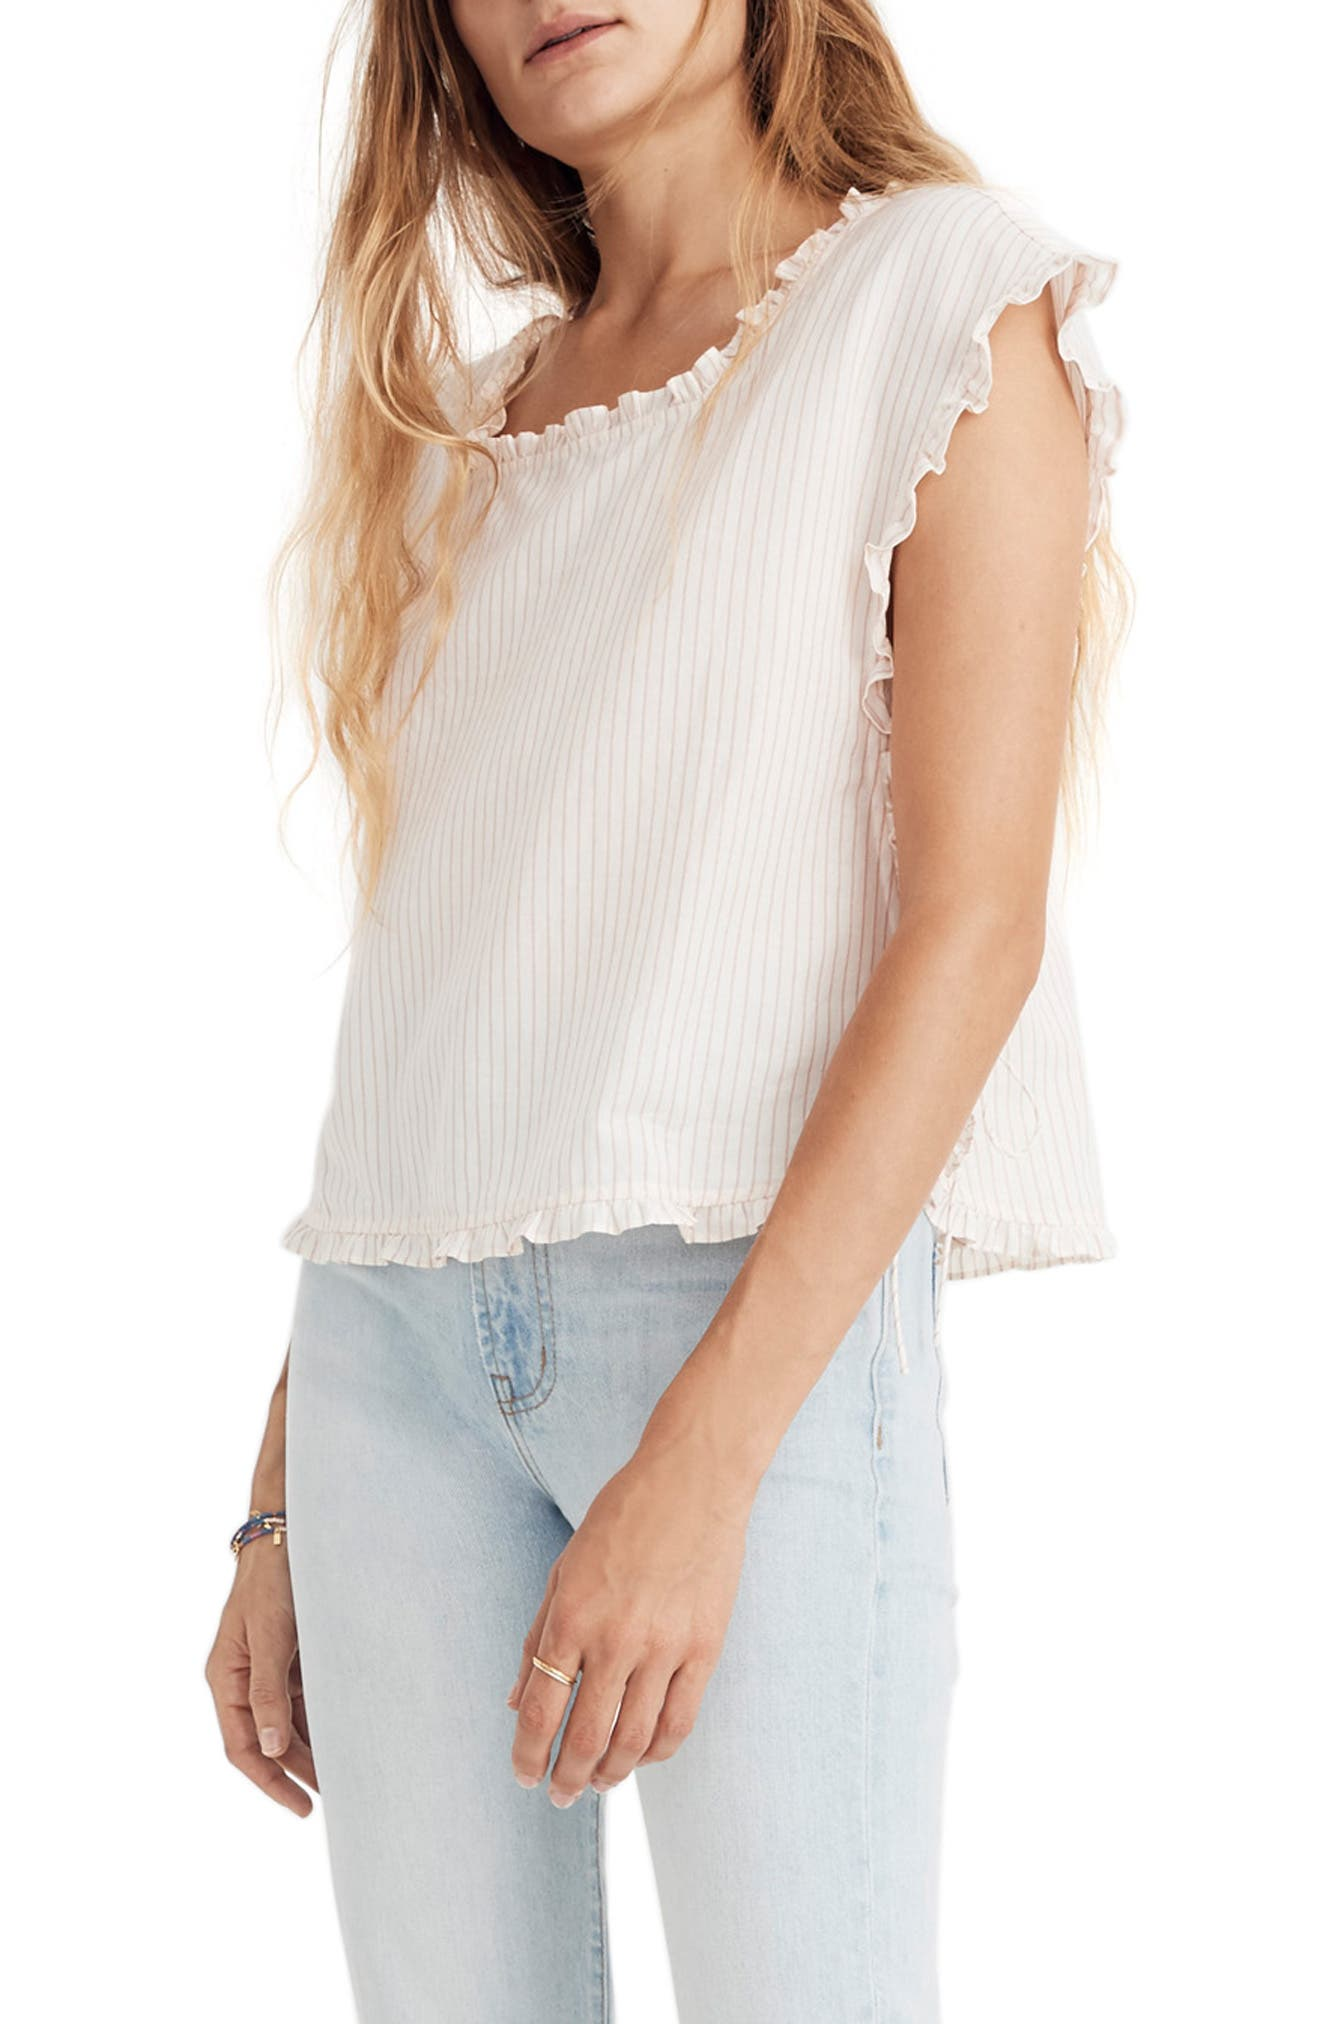 MADEWELL,                             Stripe Ruffle Side Tie Top,                             Main thumbnail 1, color,                             650